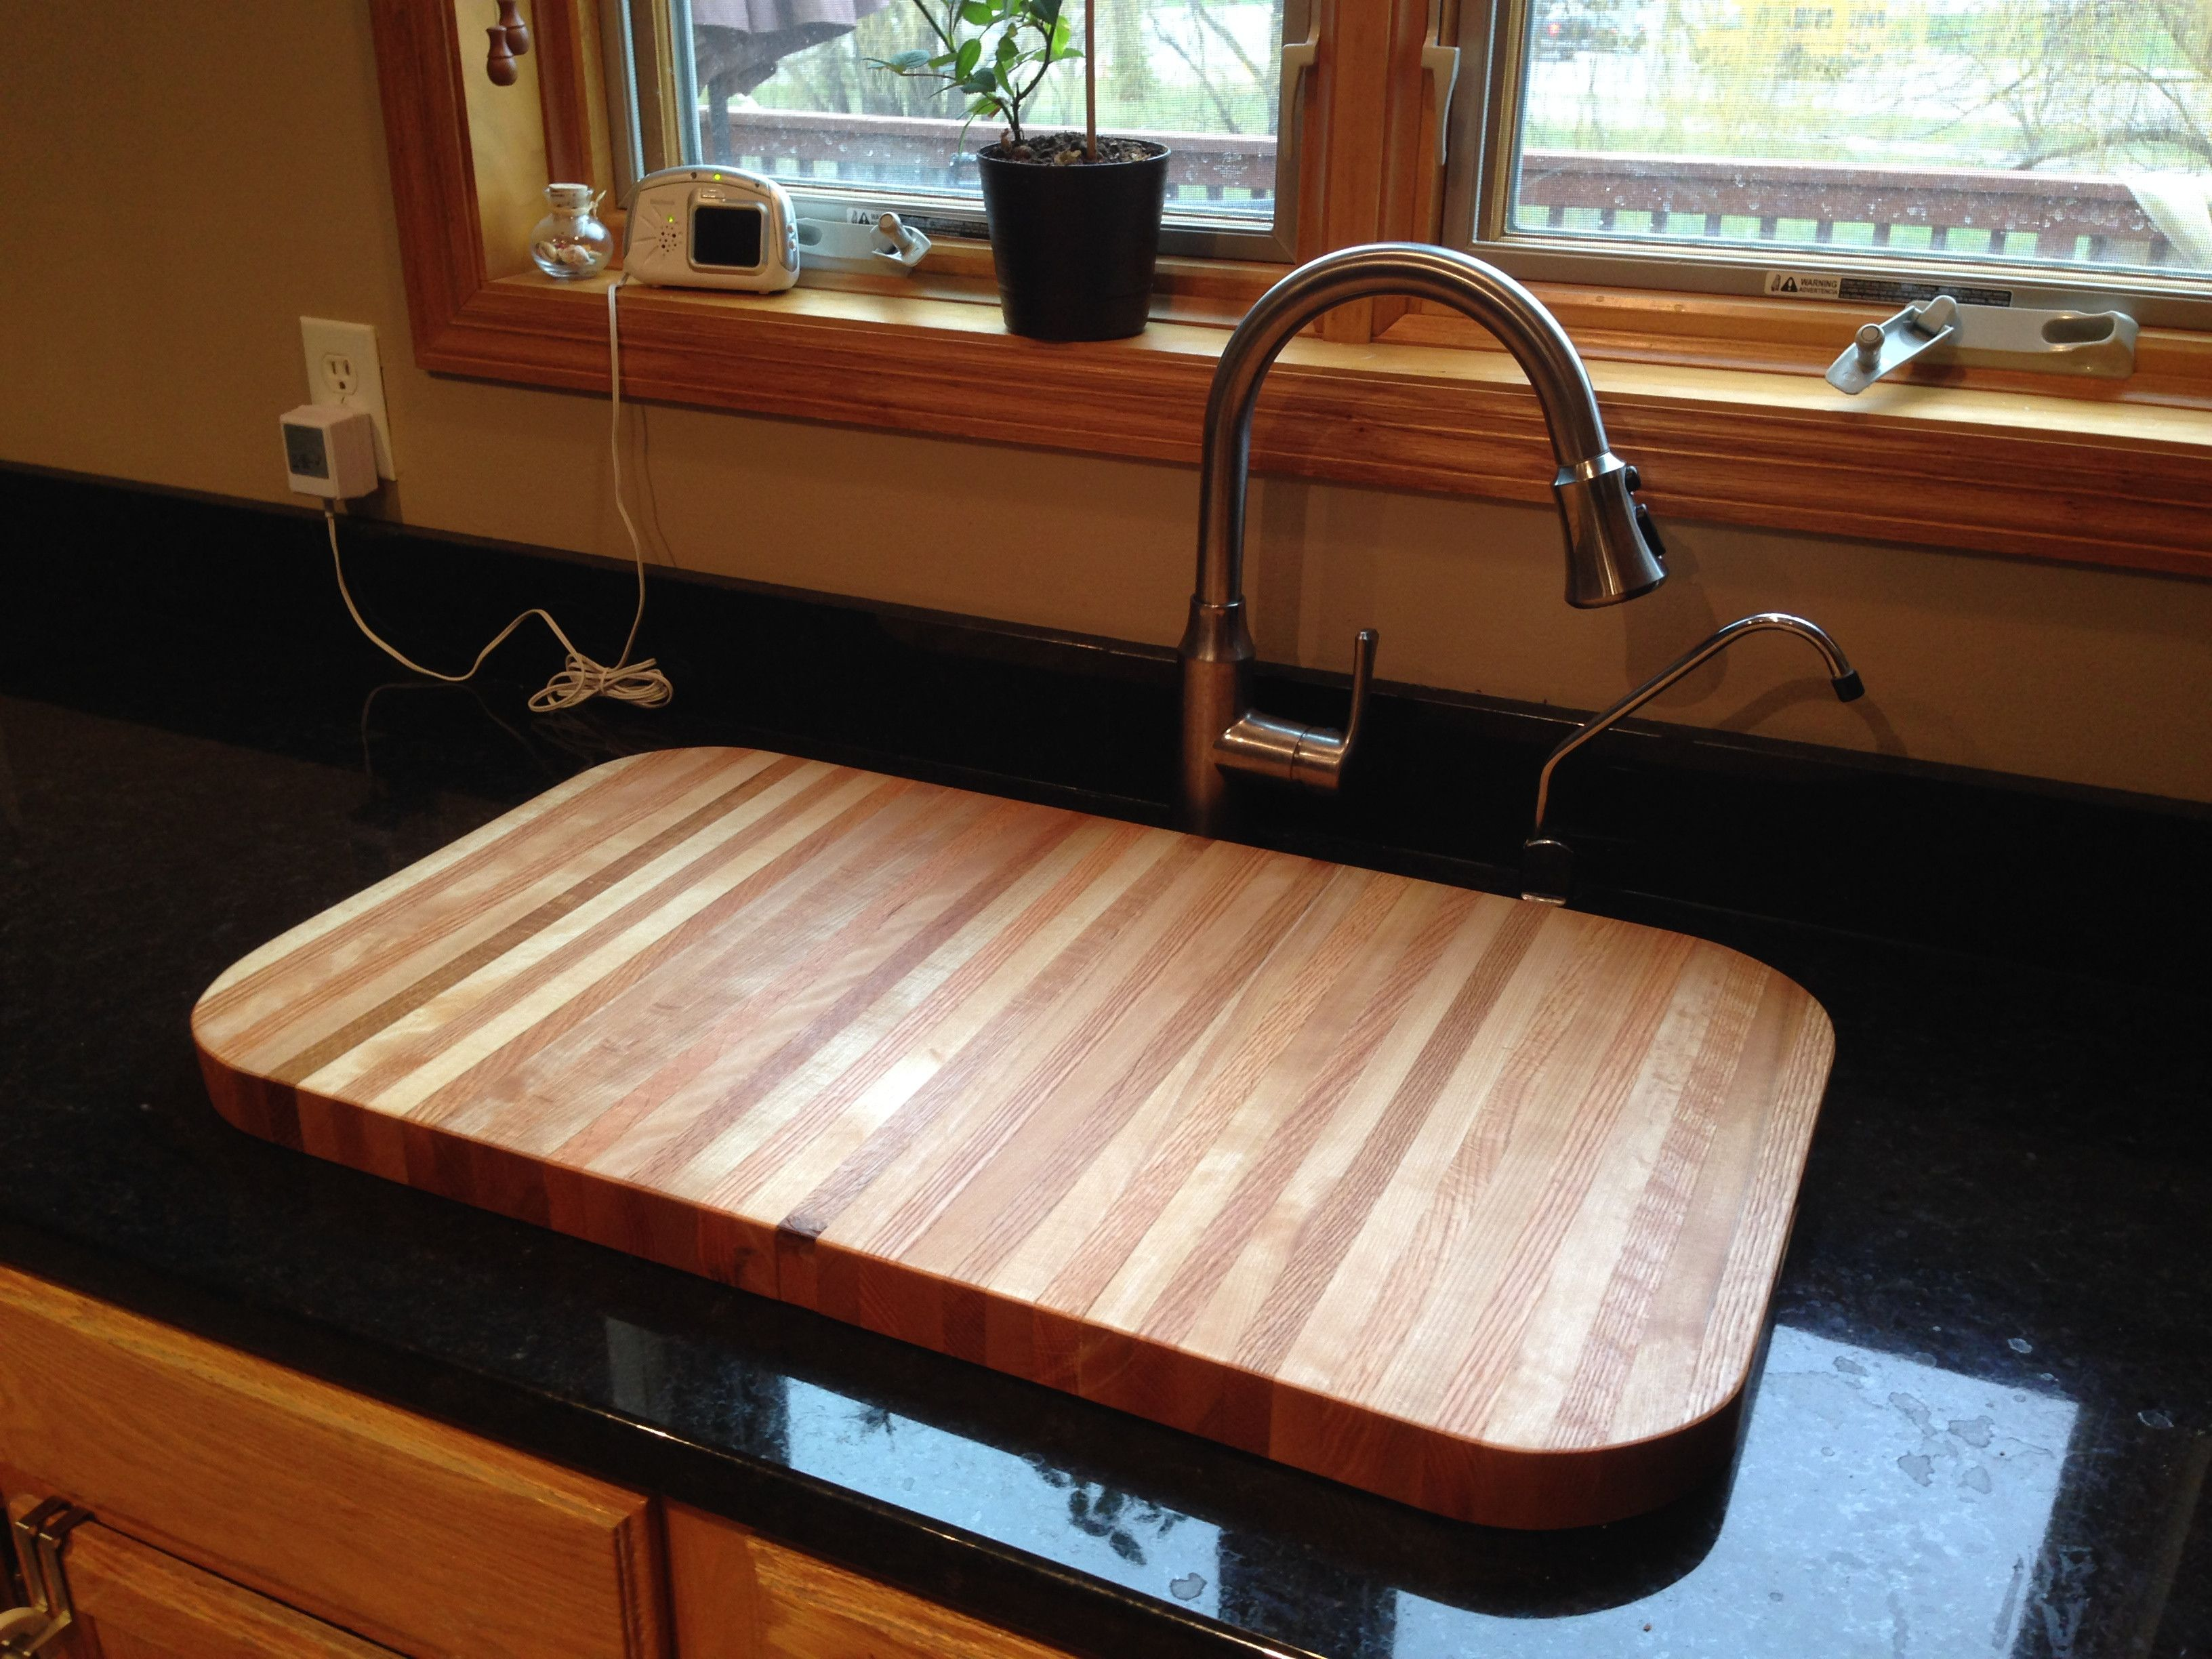 sink insert | kitchen in 2019 | wood sink, sink cover, rv sink